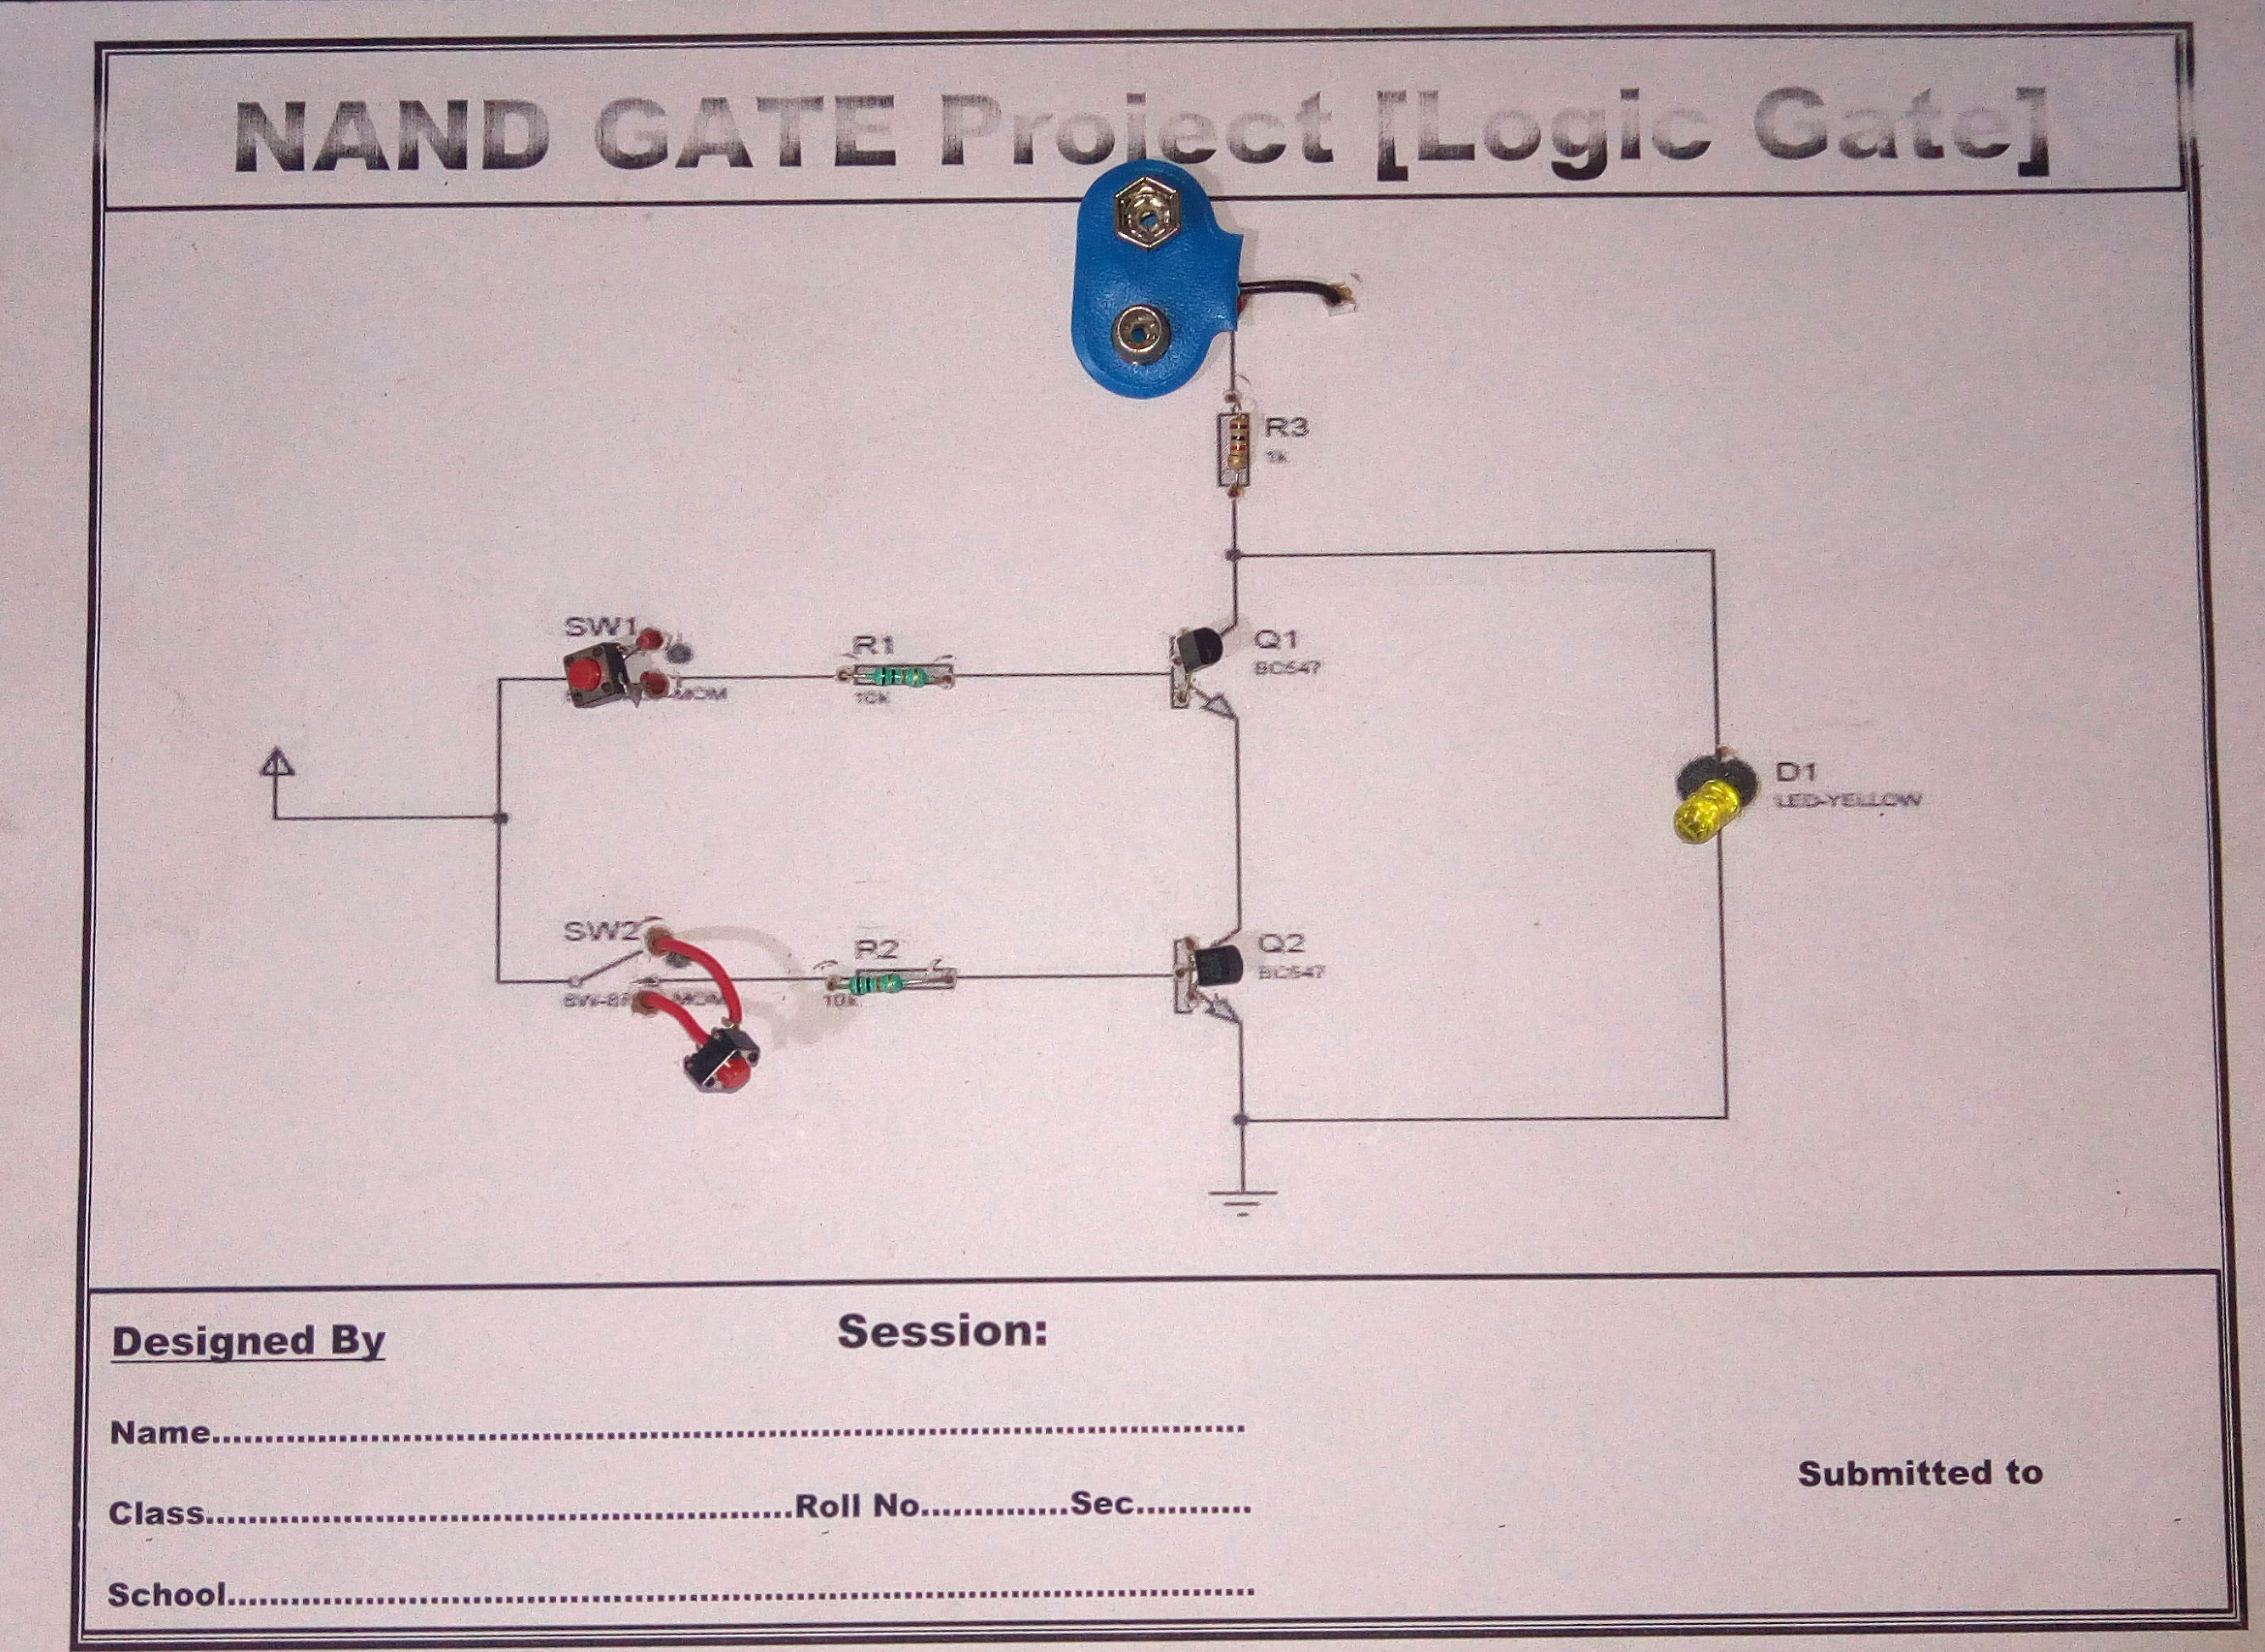 how to make nand gate 3